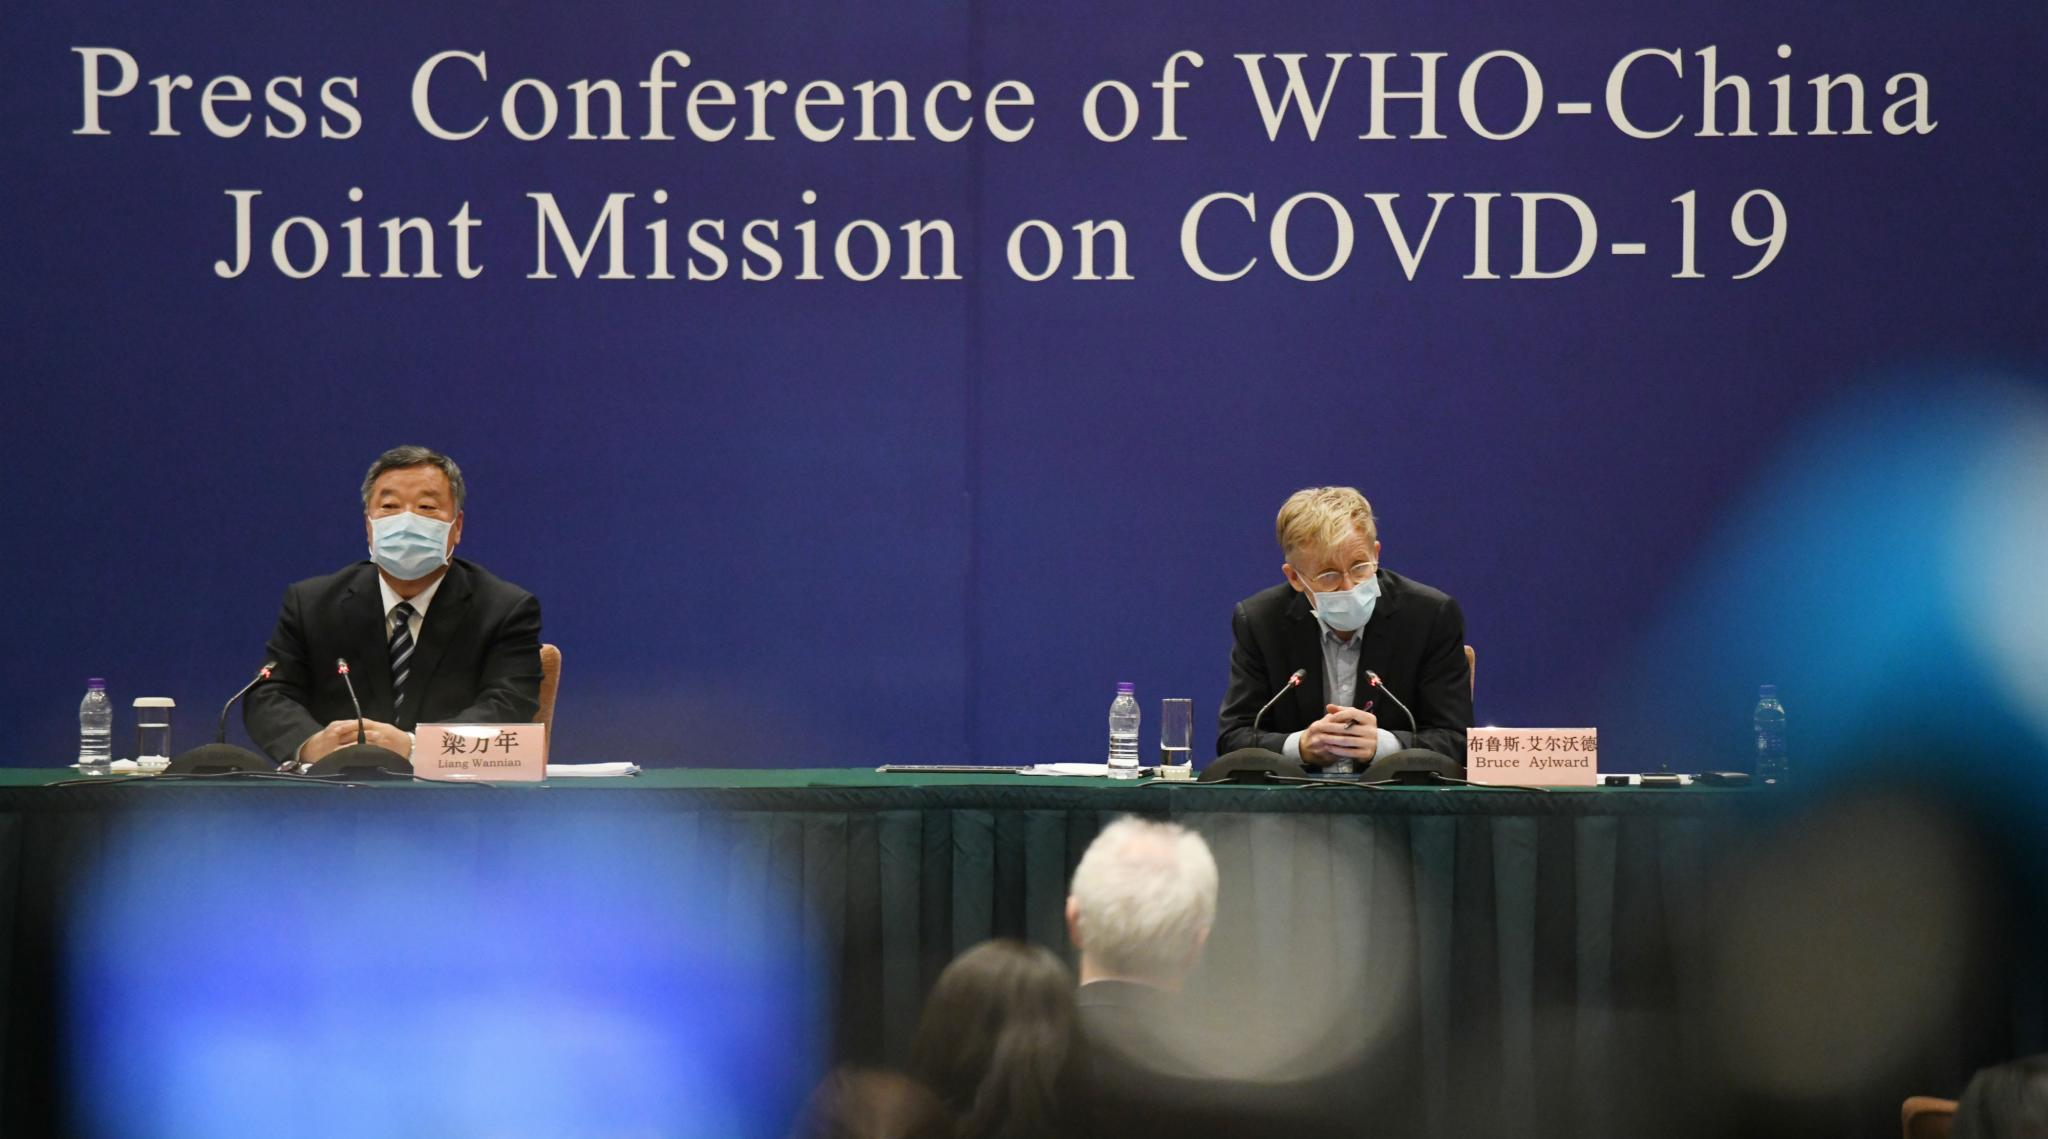 COVID-19 Outbreak: WHO Warns Coronavirus May be 'Around for Months'